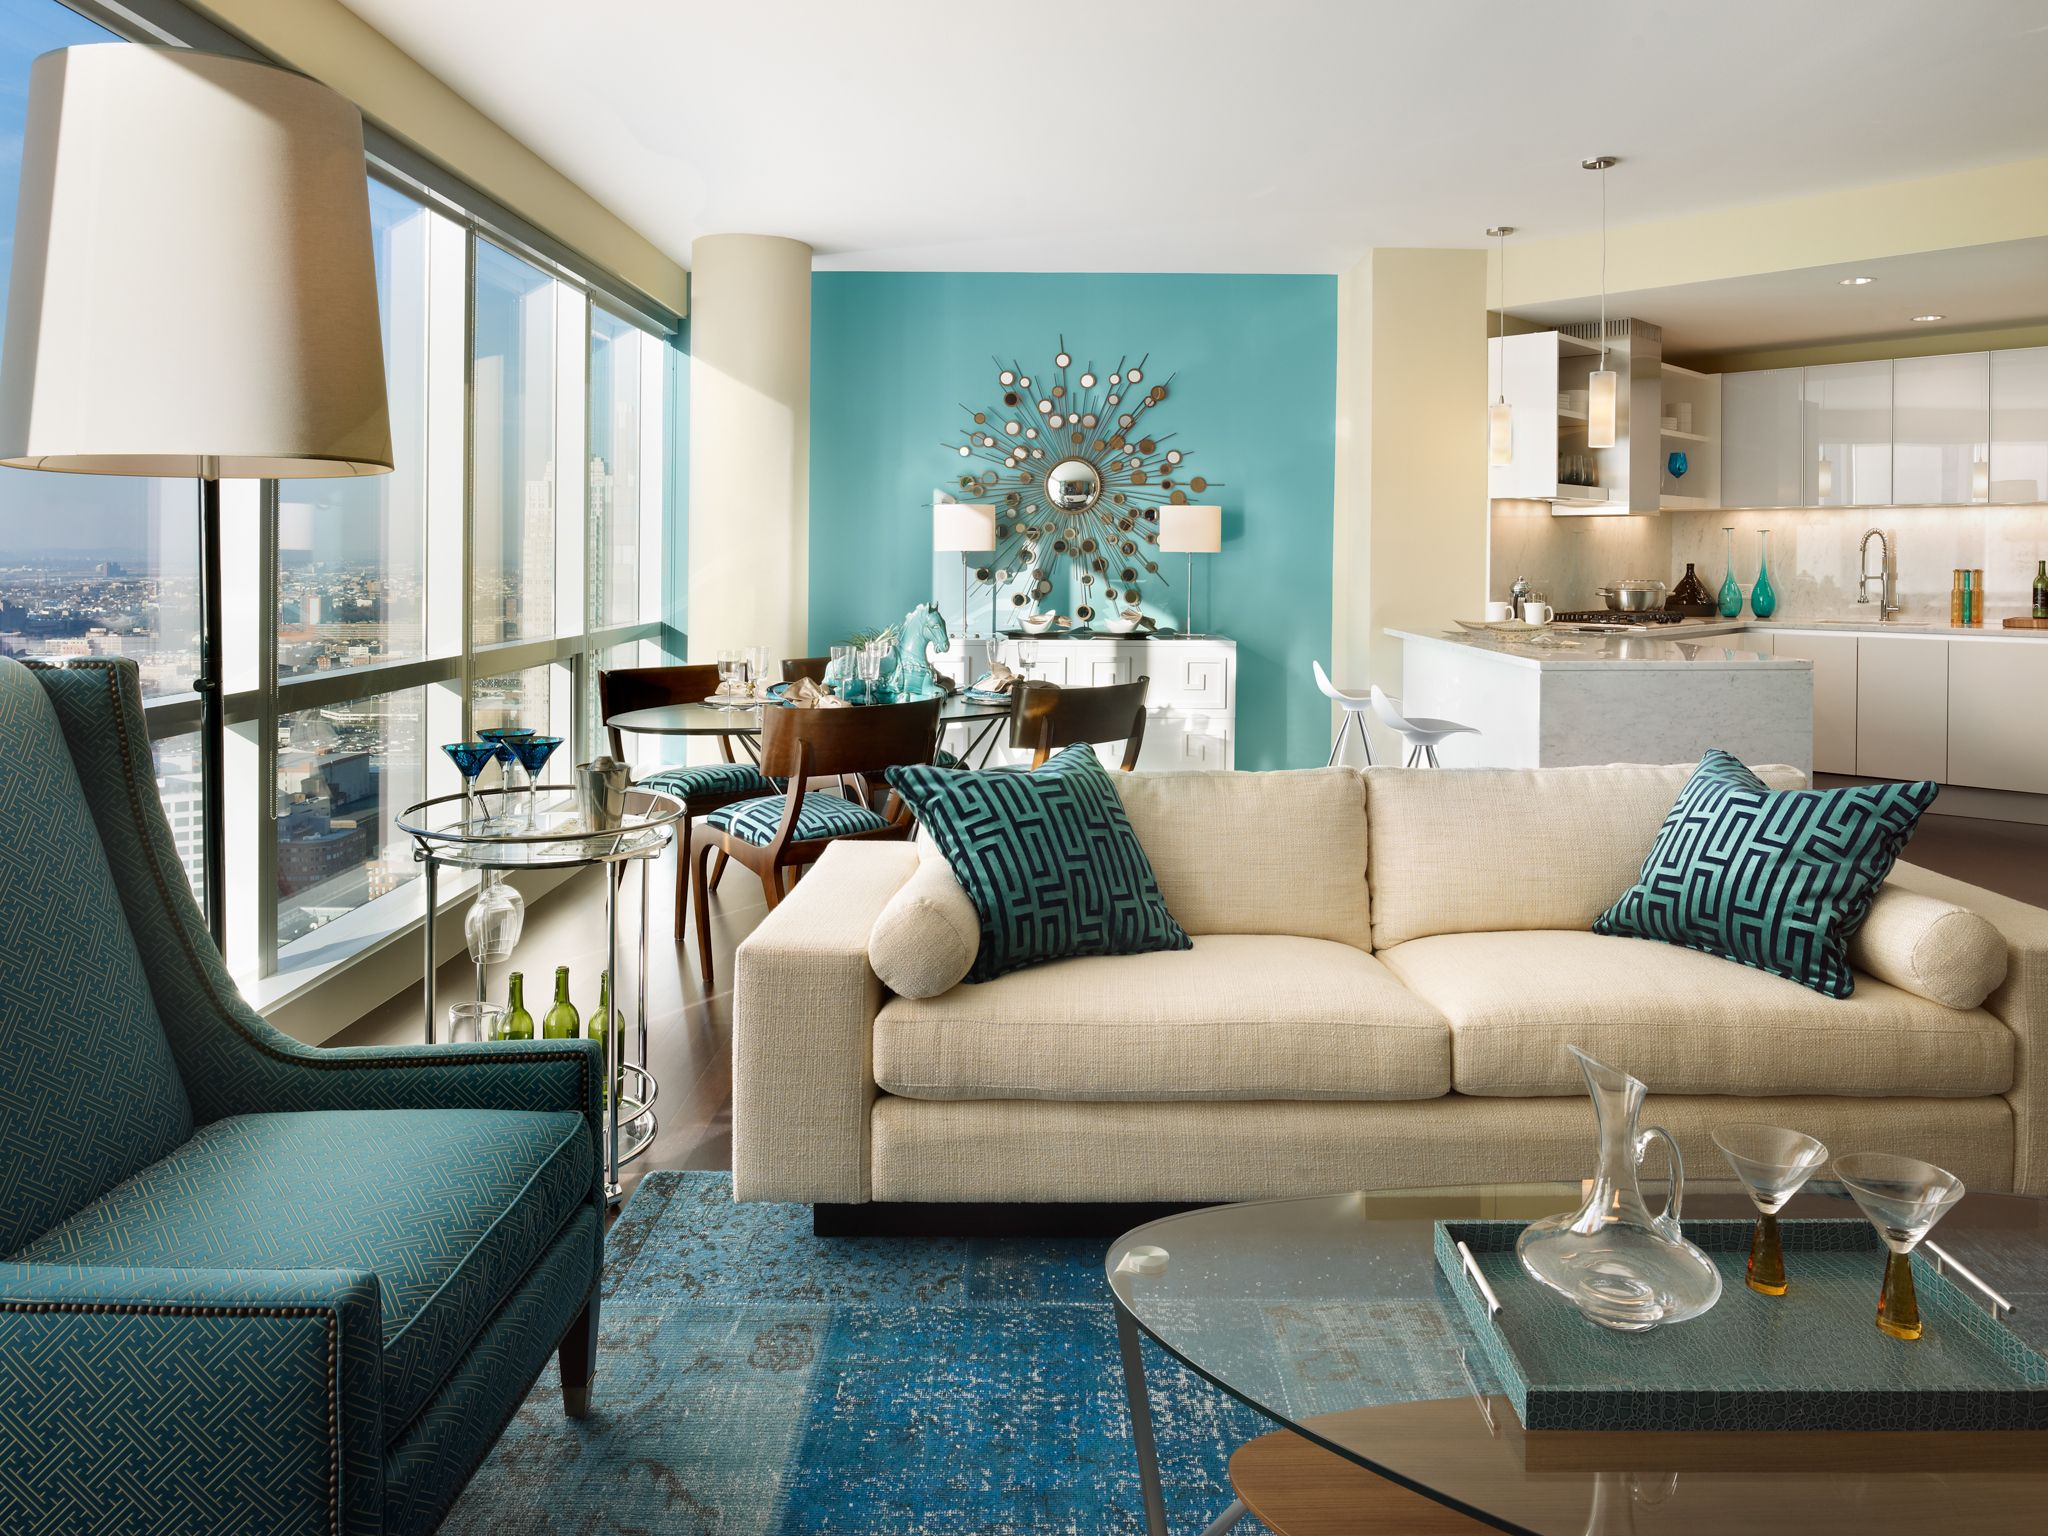 10+ Stunning Teal And Blue Living Room